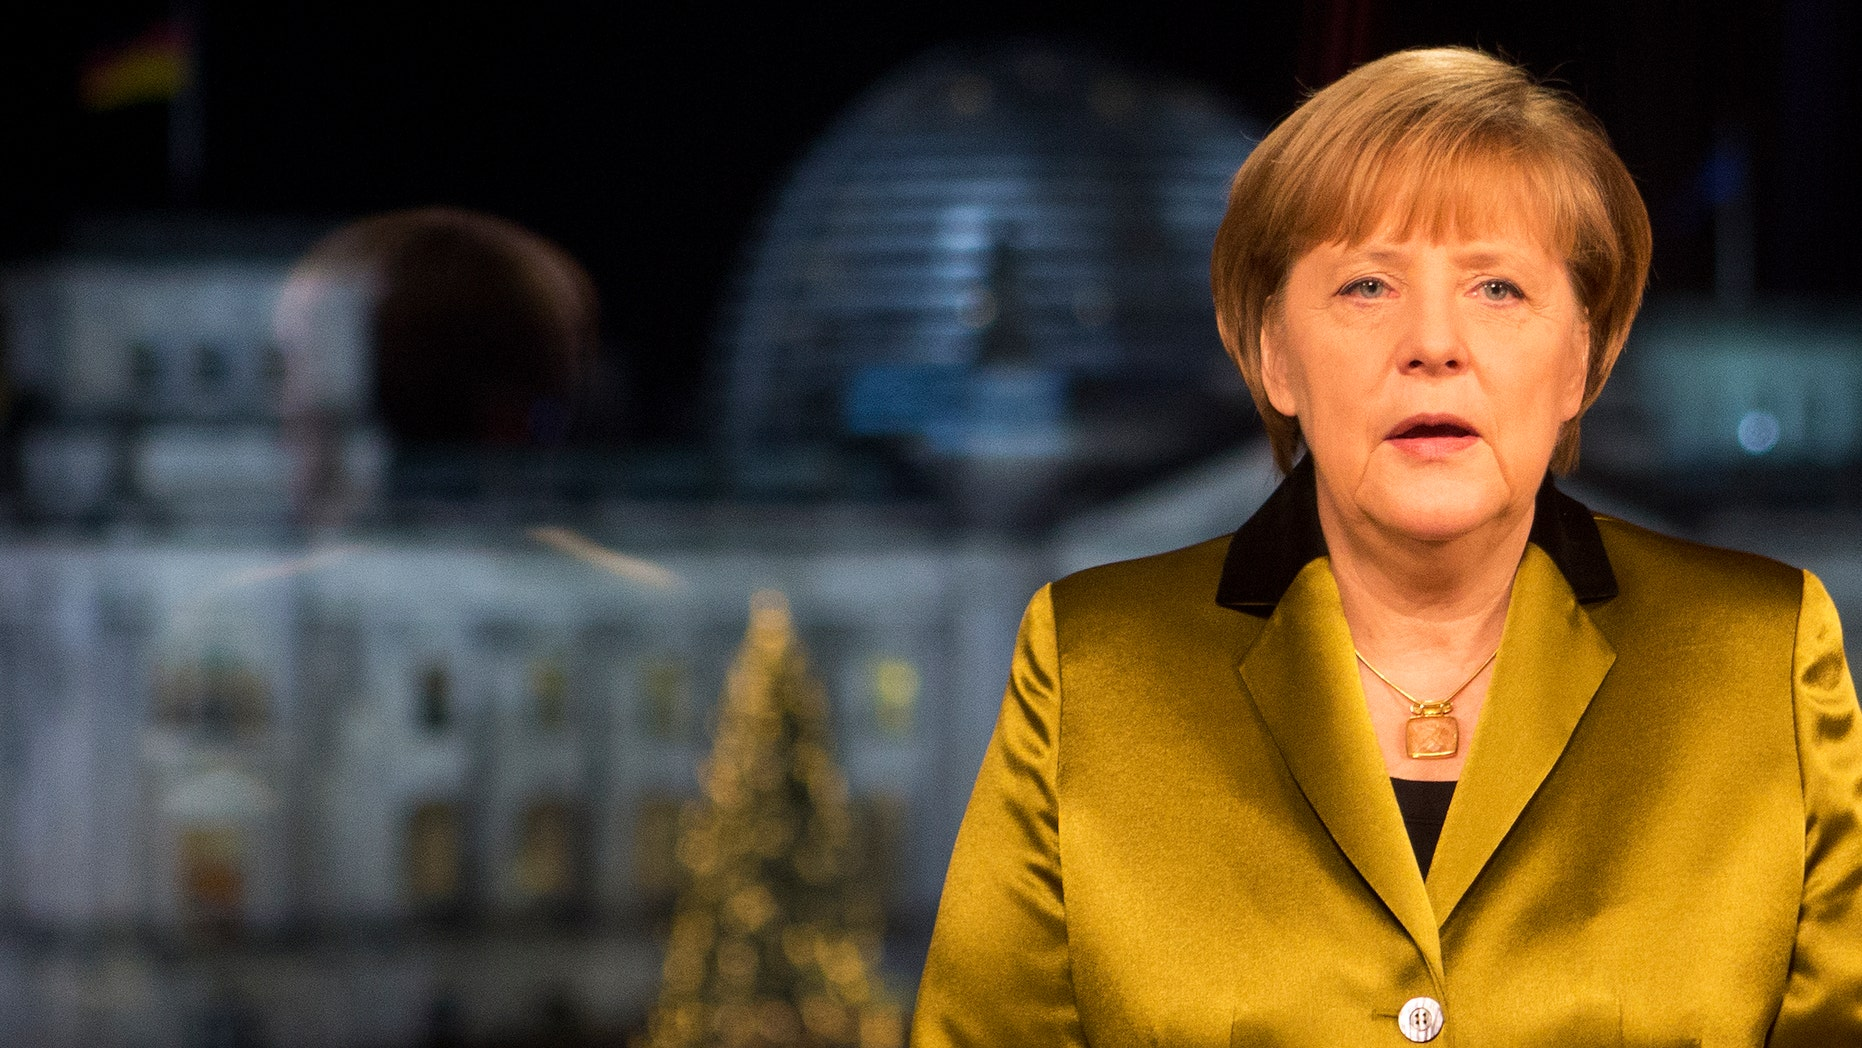 Dec. 30, 2013 - German Chancellor Angela Merkel after the recording of her annual New Year's speech at the Chancellery in Berlin, Germany.